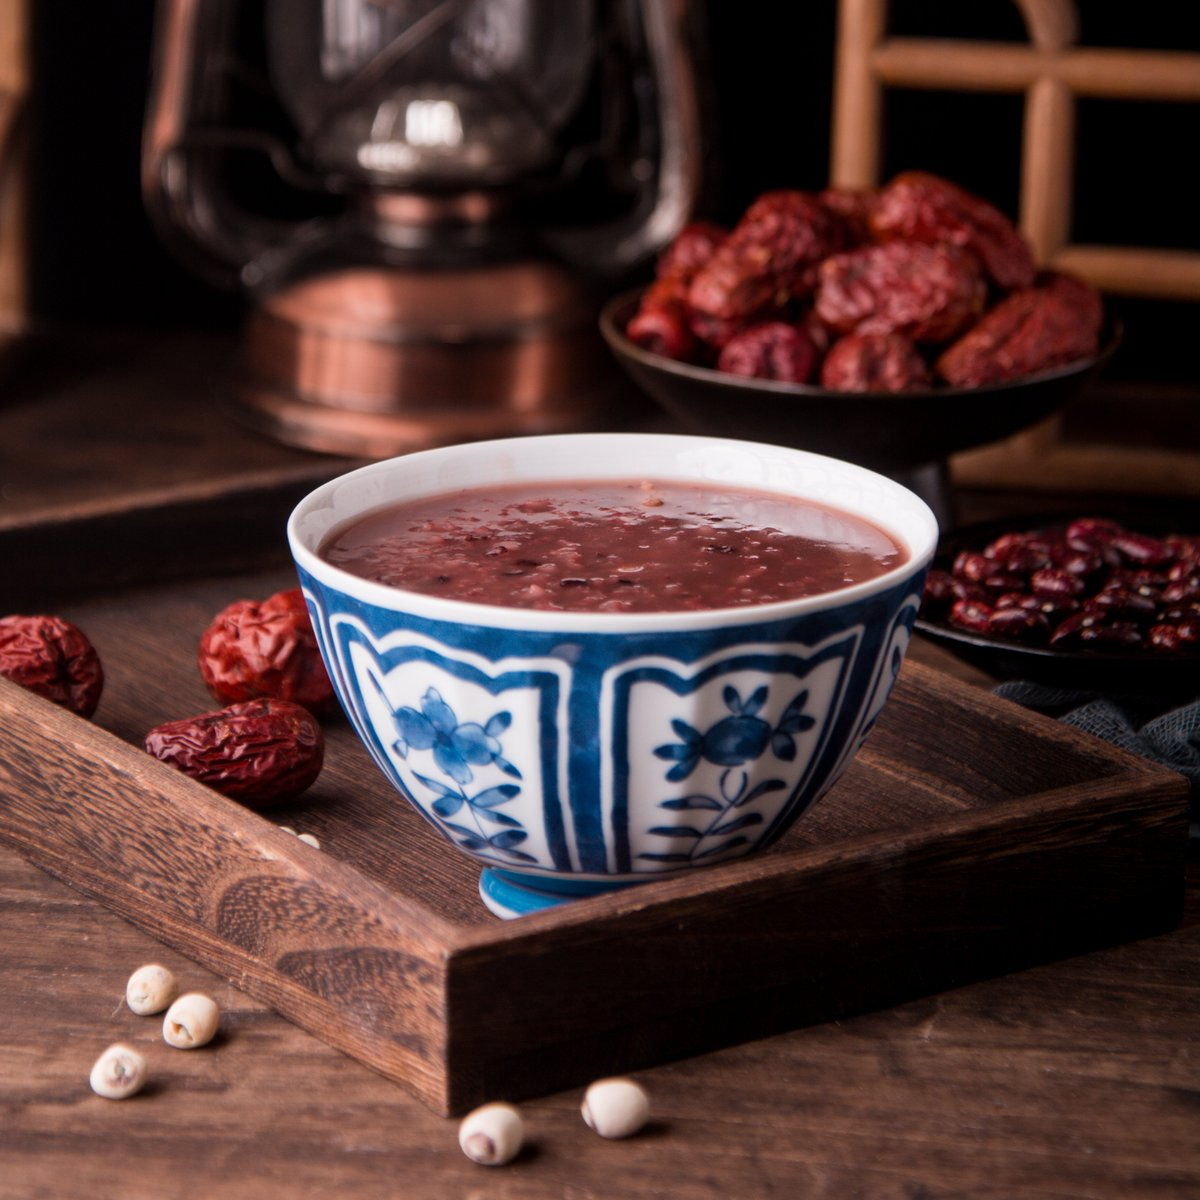 Laba porridge is made from different kinds of rice, beans, dried nuts, bean curd…Full of nutritions .#LabaFestival  #Festival #congee #healthylifestyle https://t.co/nBghqZAMR2